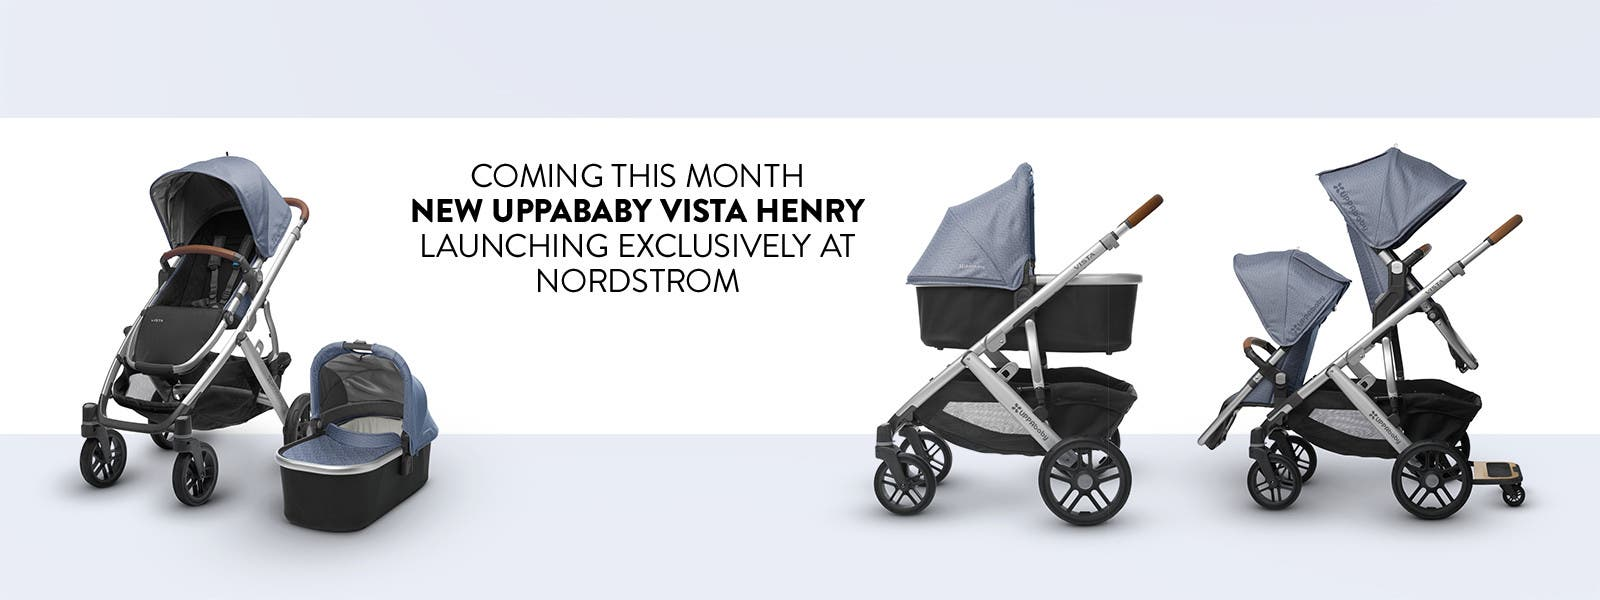 Coming this month: new UPPAbaby VISTA Henry, launching exclusively at Nordstrom.